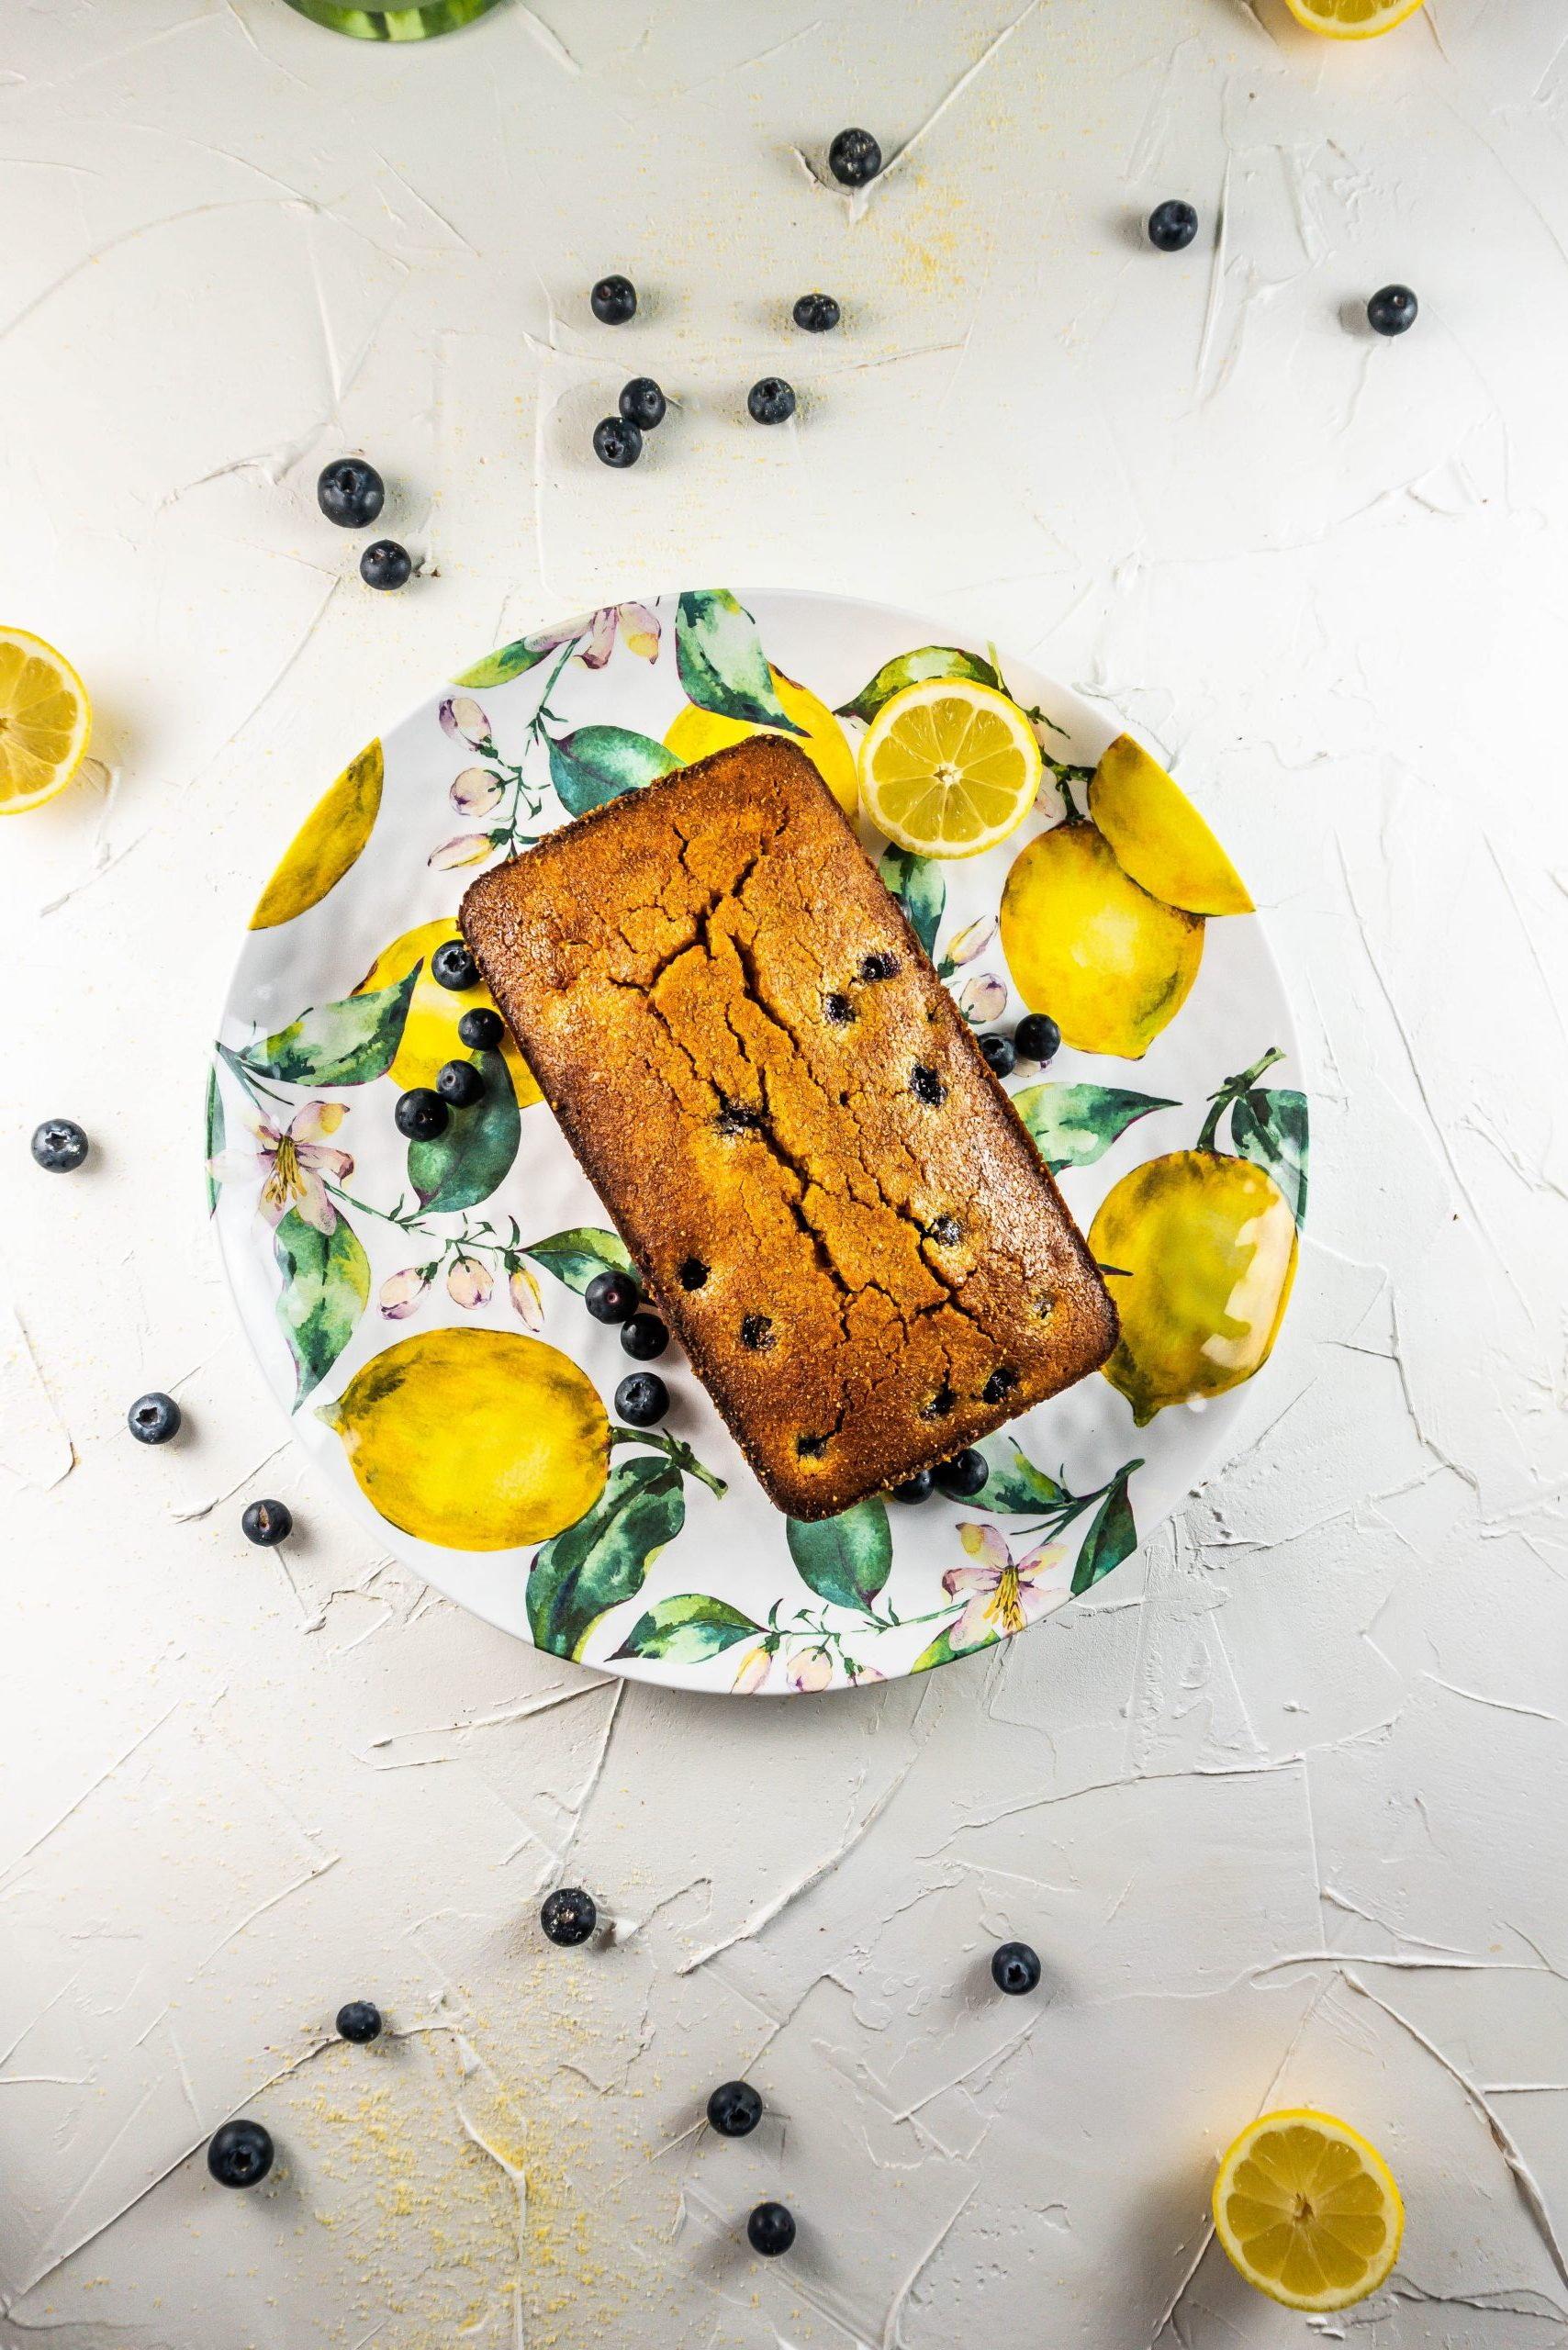 Lemon Blueberry Polenta Bread on a colorful plate with scattered polenta and blueberries photographed from above